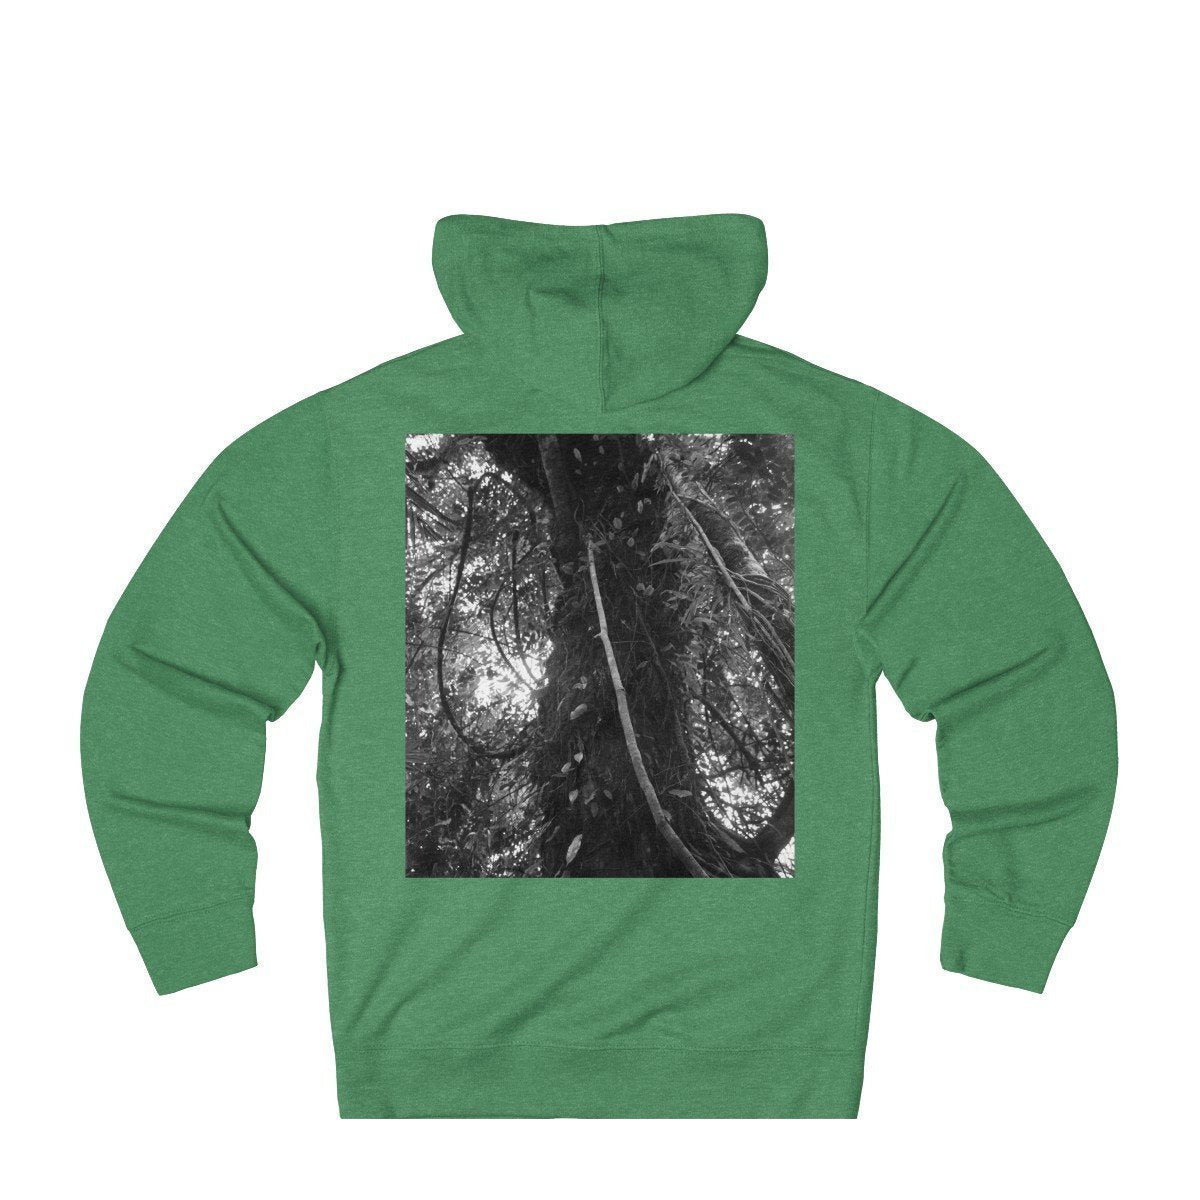 Unisex French Terry Hoodie - EYNF - Hiking up El Yunque Trail and Ancient huge Colorado tree on tradewinds 2015 Hoodie Printify